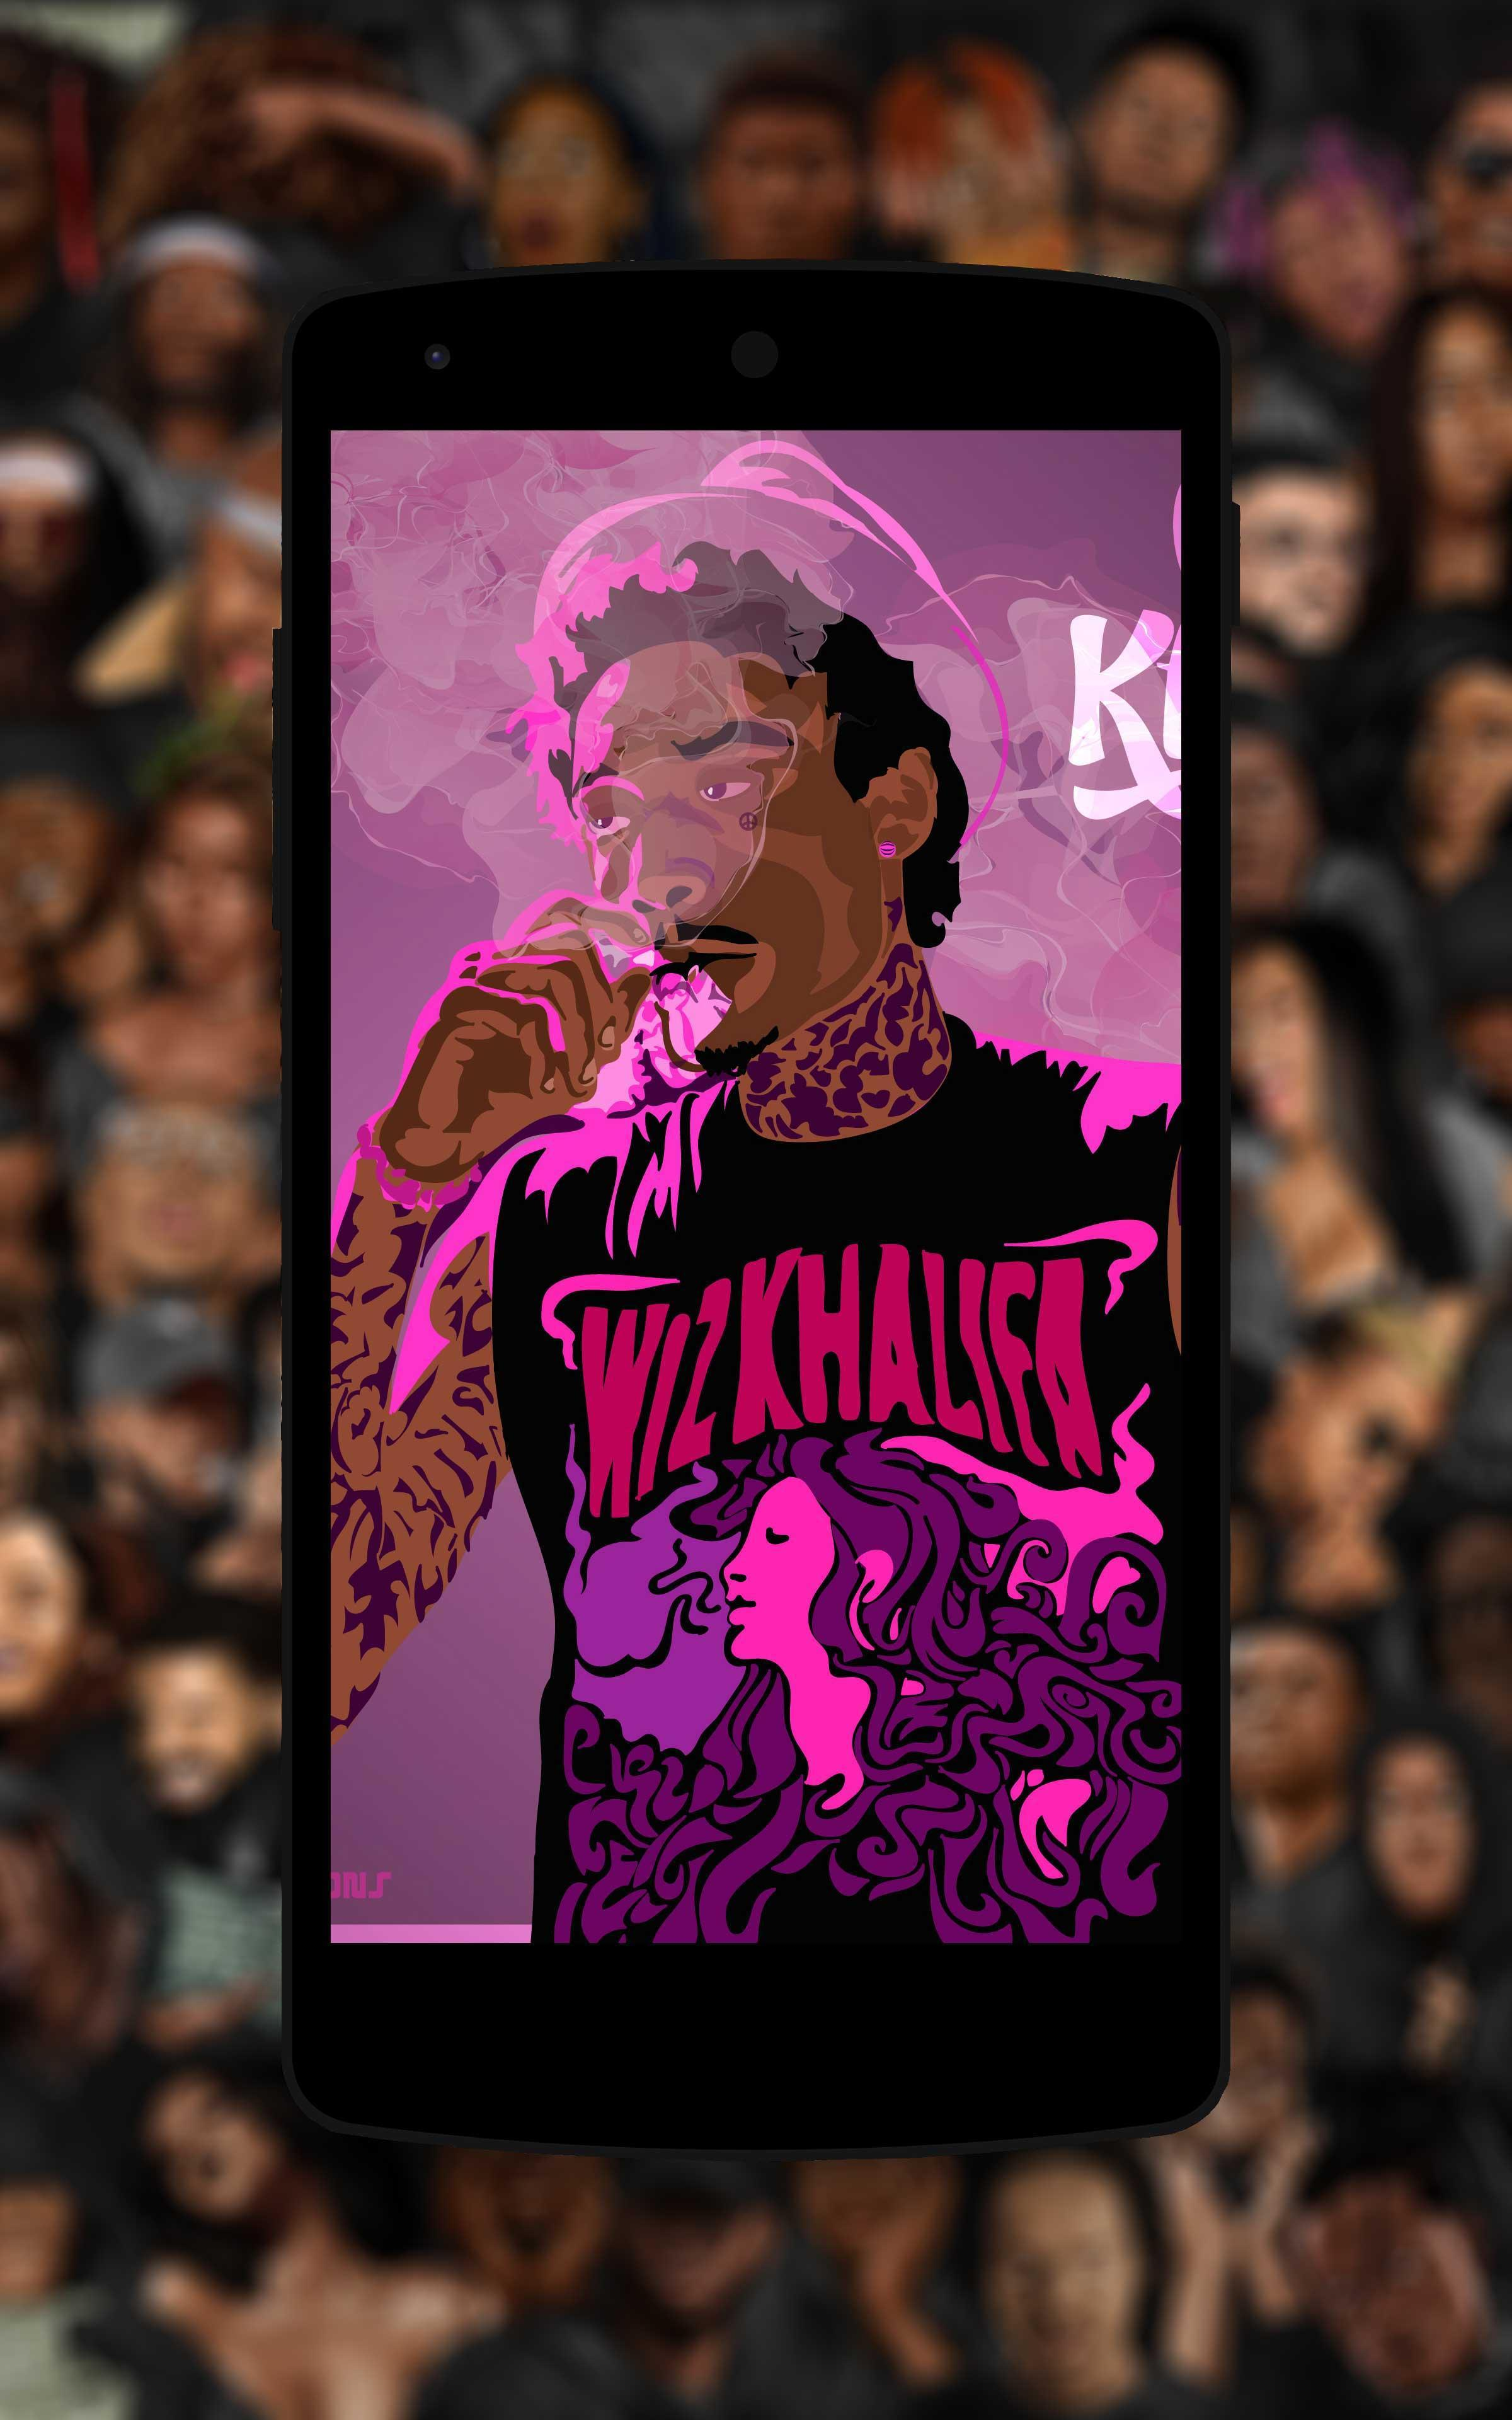 Wiz Khalifa Rapper Wallpaper For Android Apk Download